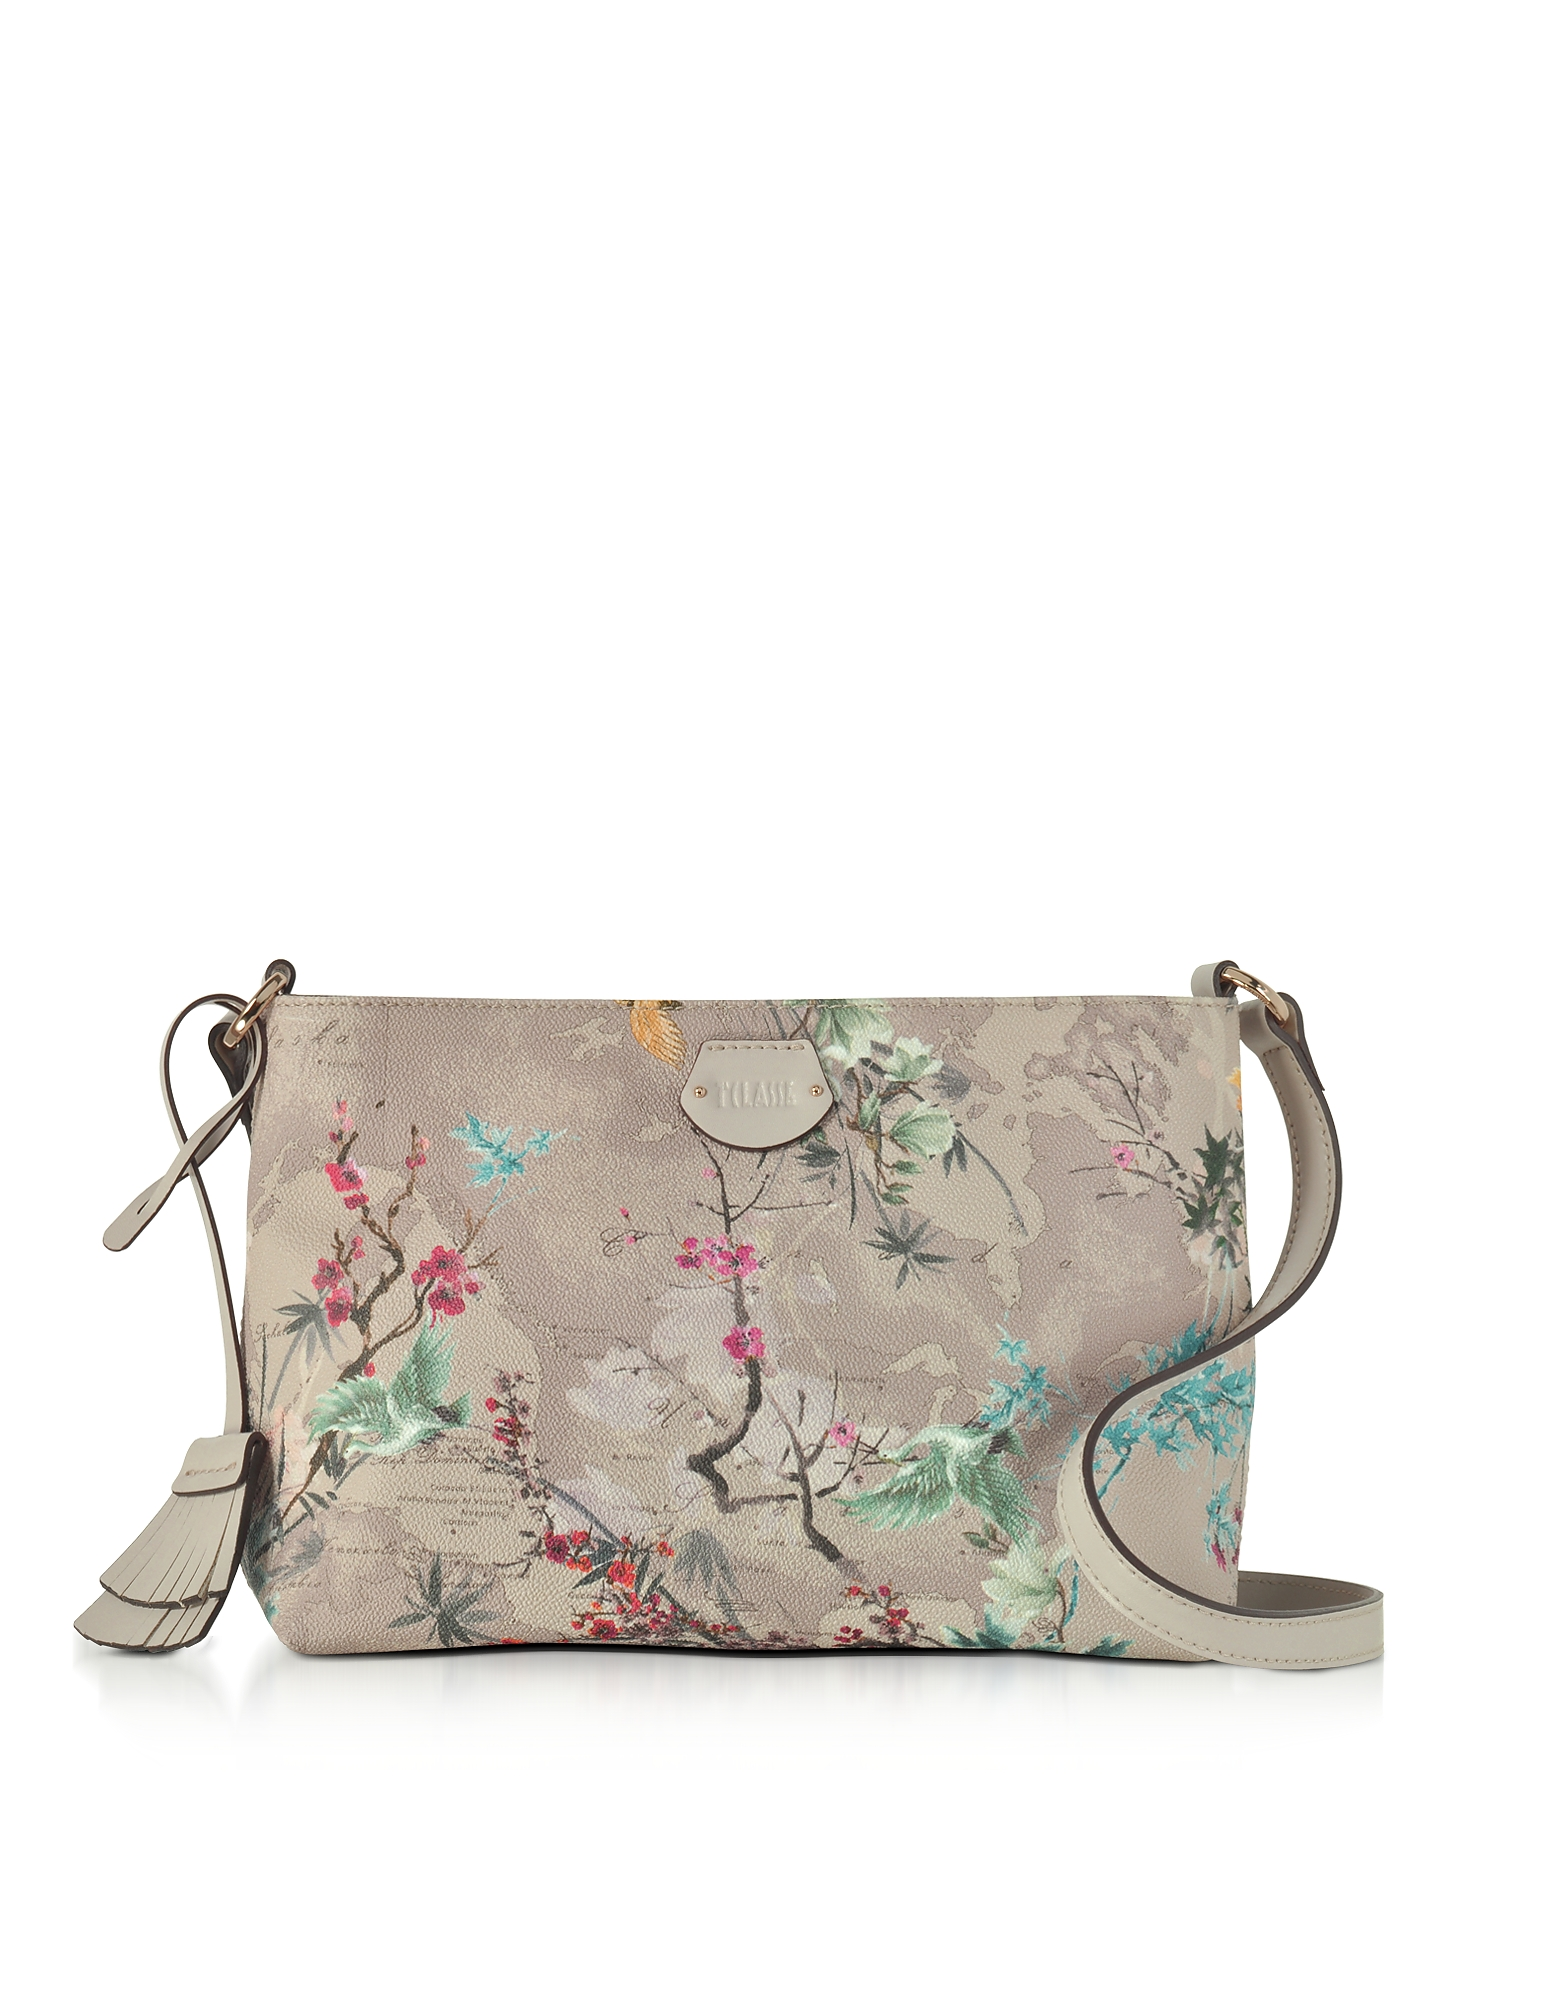 Alviero Martini 1A Classe Handbags, Small Oriental Garden Crossbody Bag